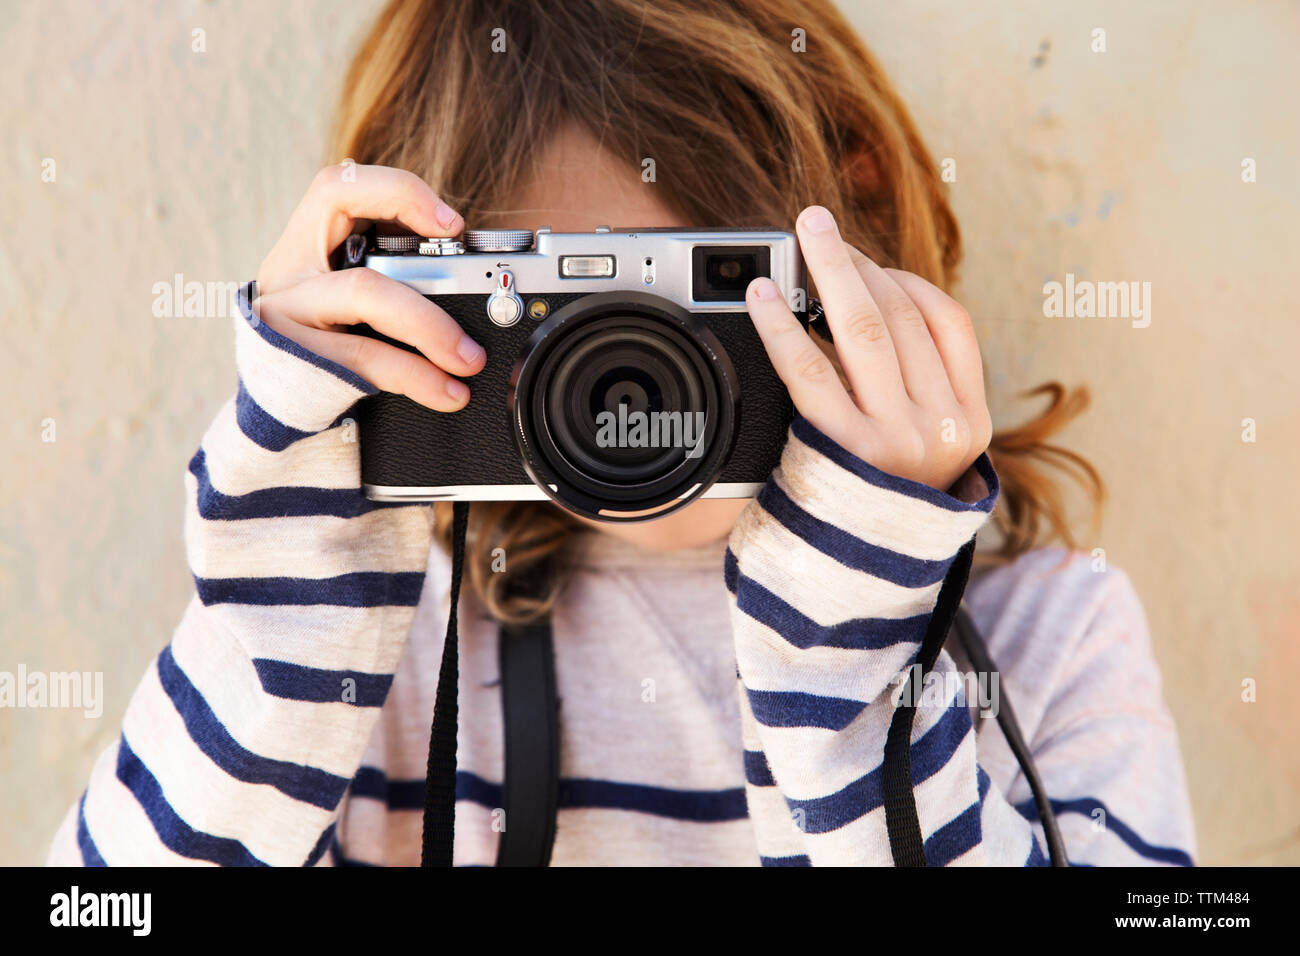 Close-up of boy photographing with camera - Stock Image